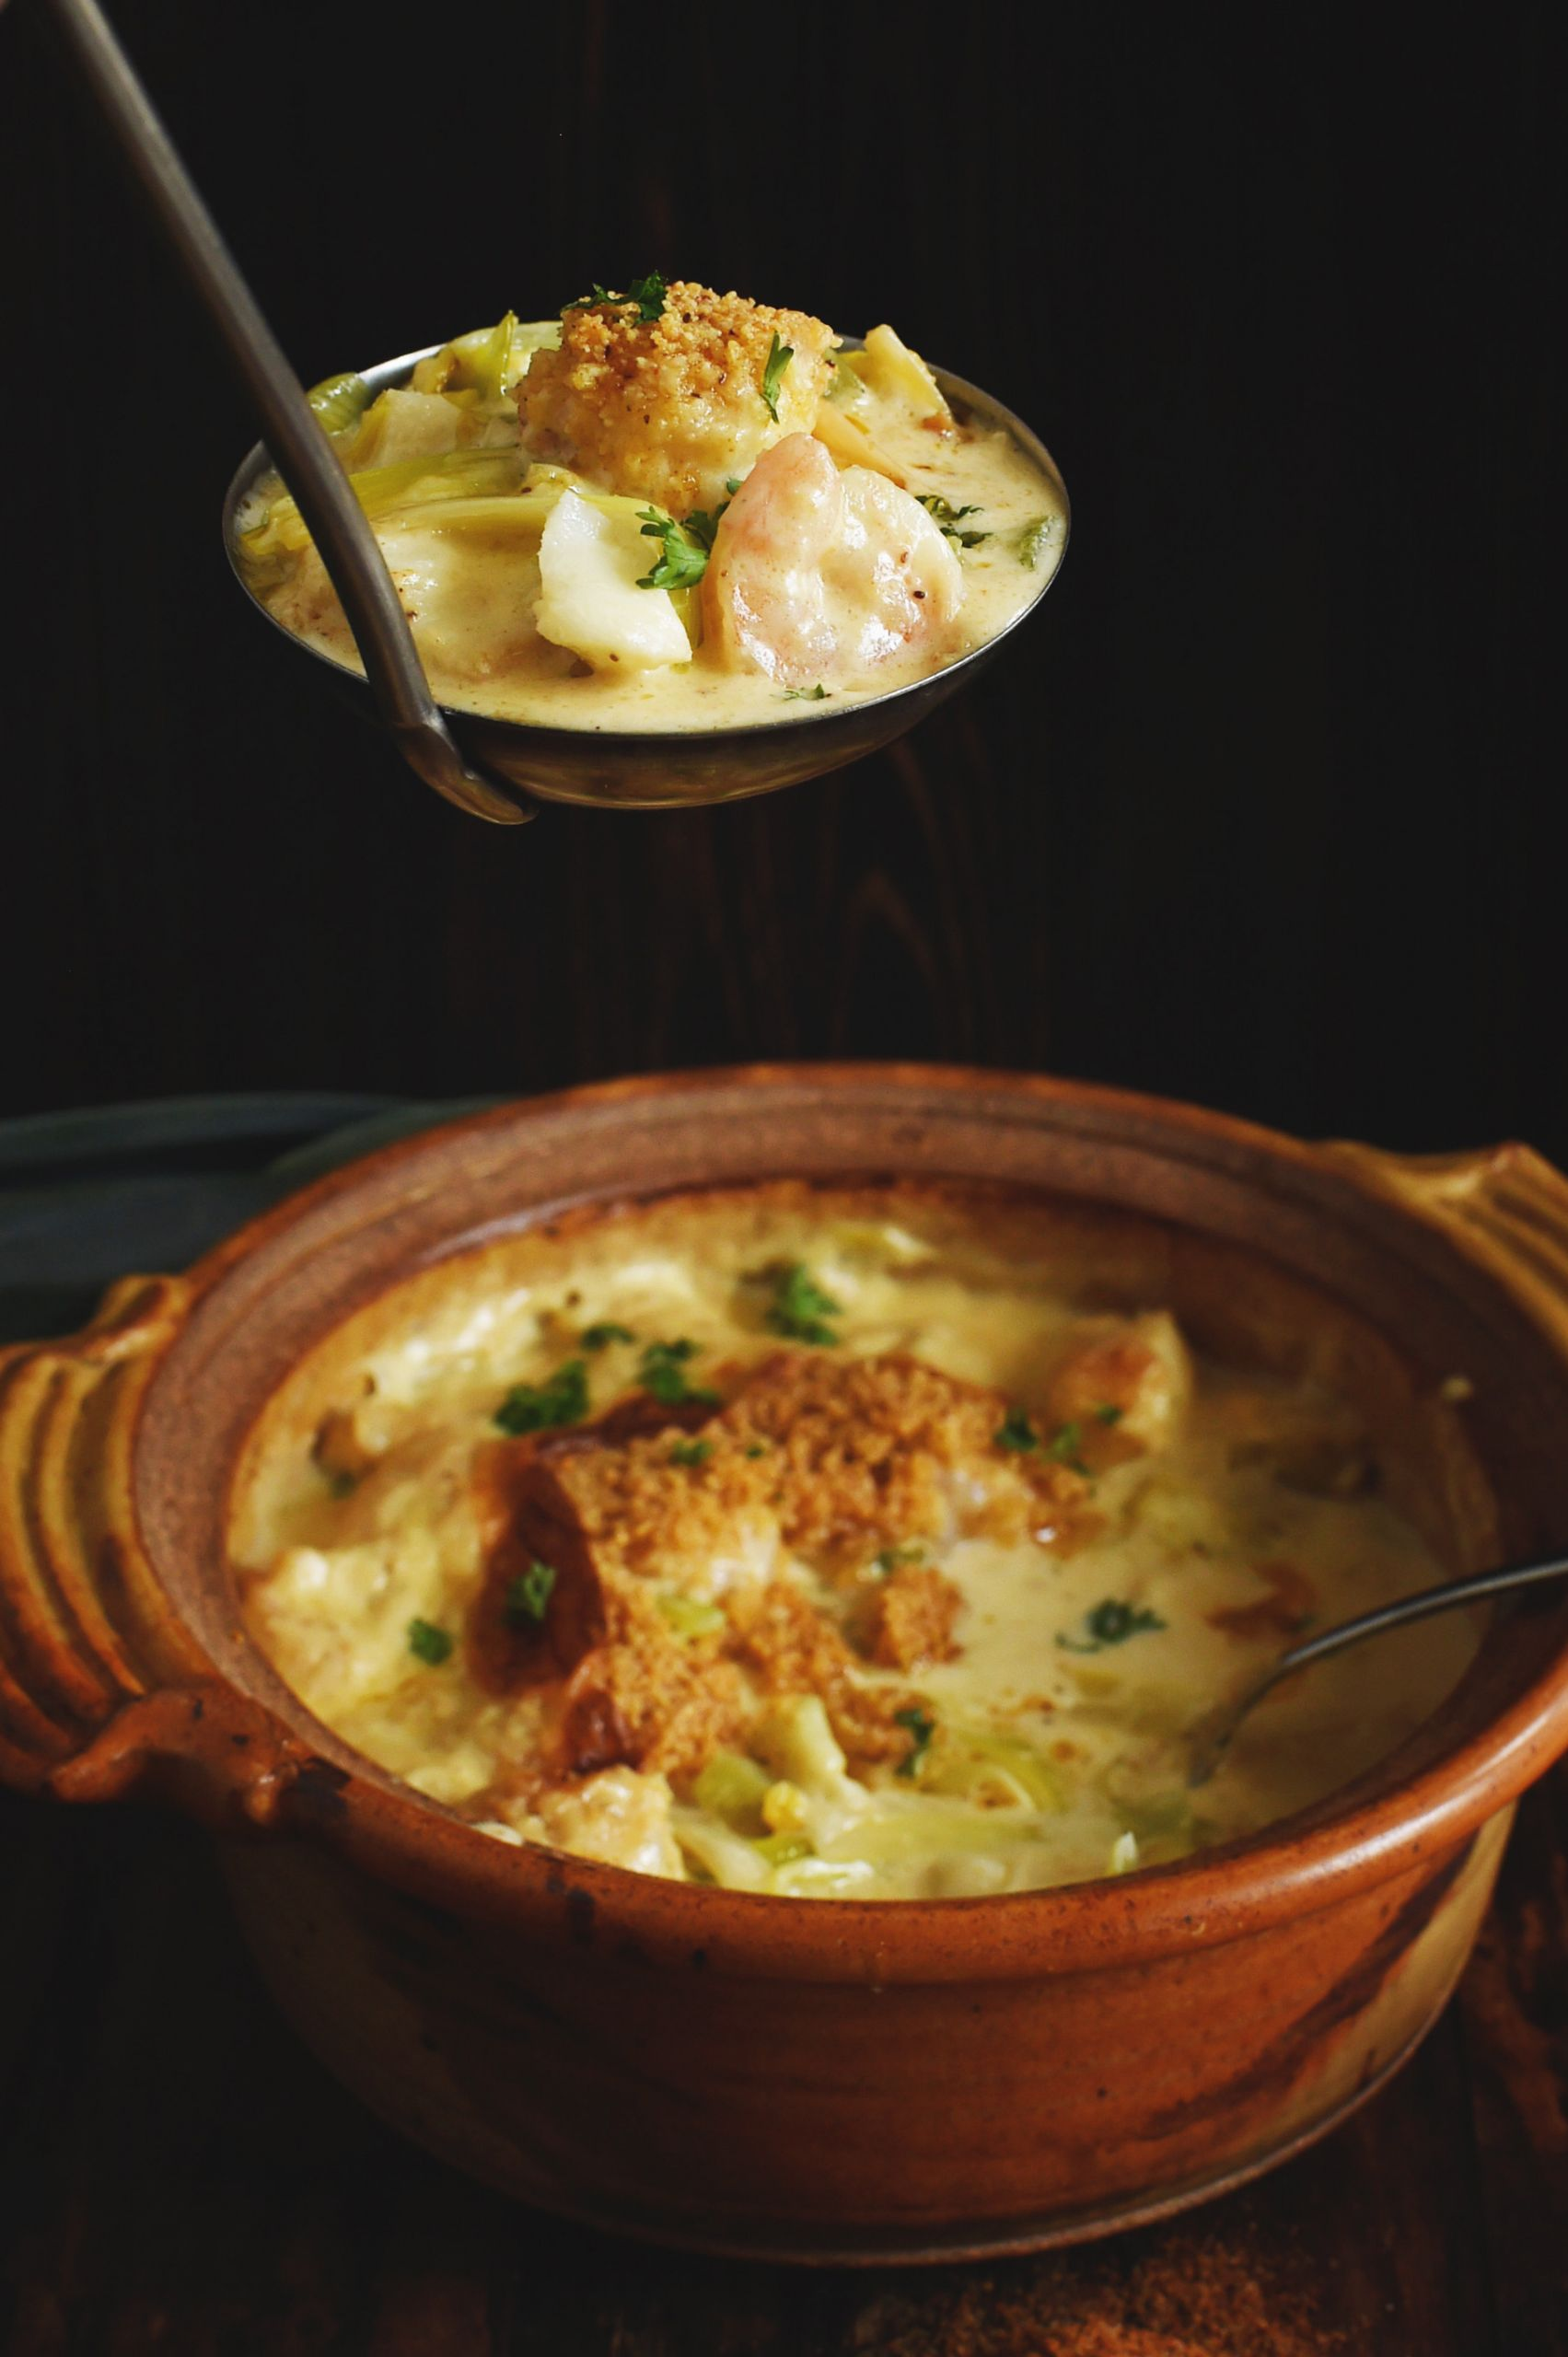 Low Carb Seafood Casserole  Low Carb Baked Seafood Casserole Recipe Simply So Healthy